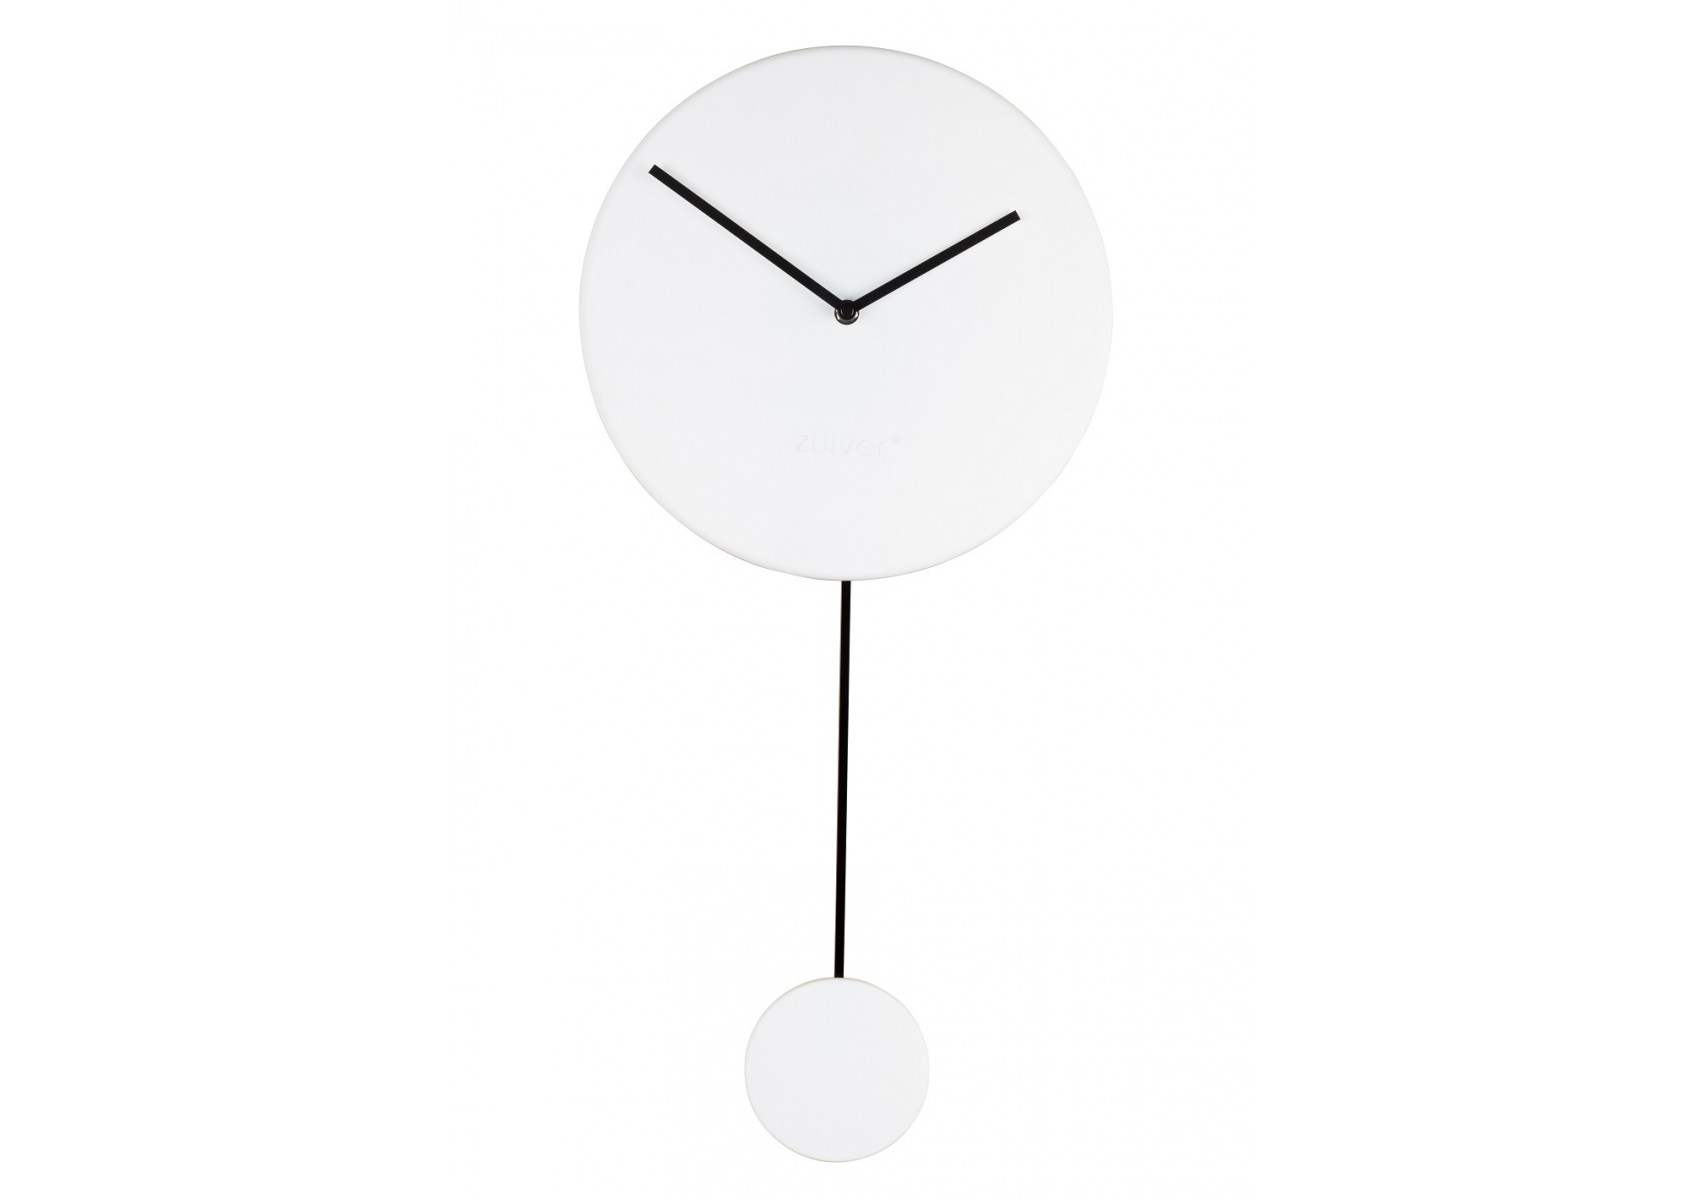 Table Basse Zuiver Horloge Design En Pendule De La Collection Minimal De Chez